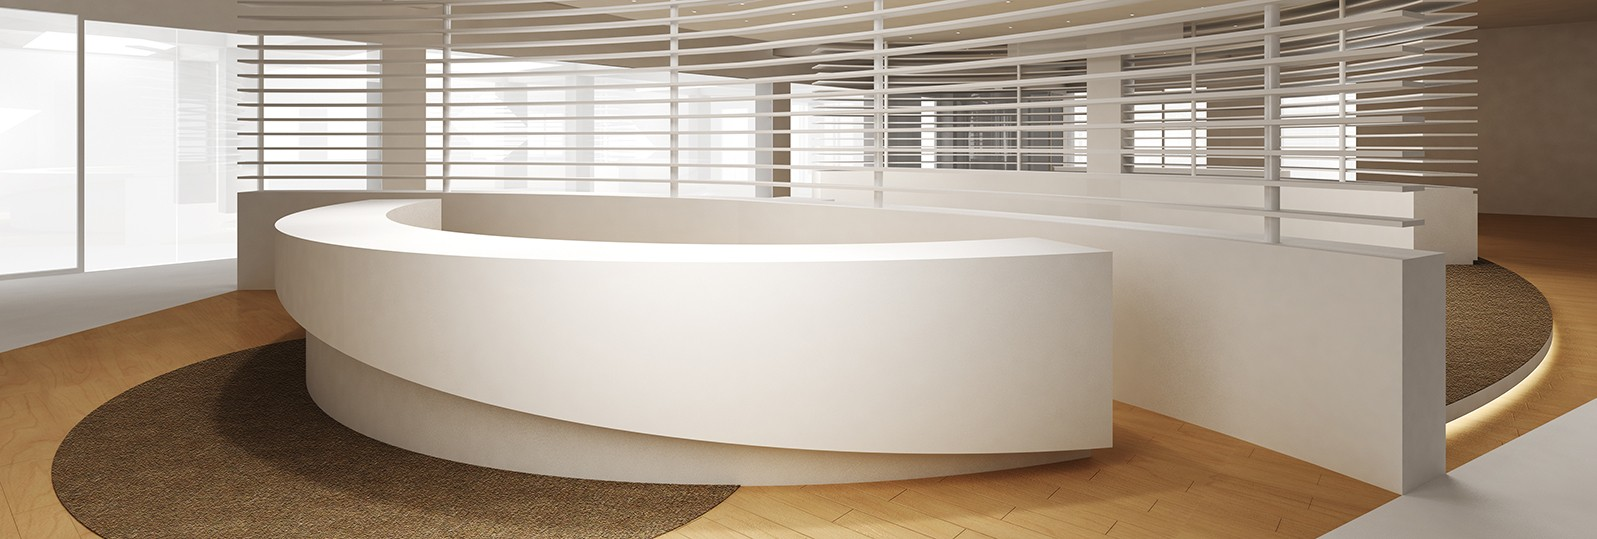 avonite white reception desk thermoformed